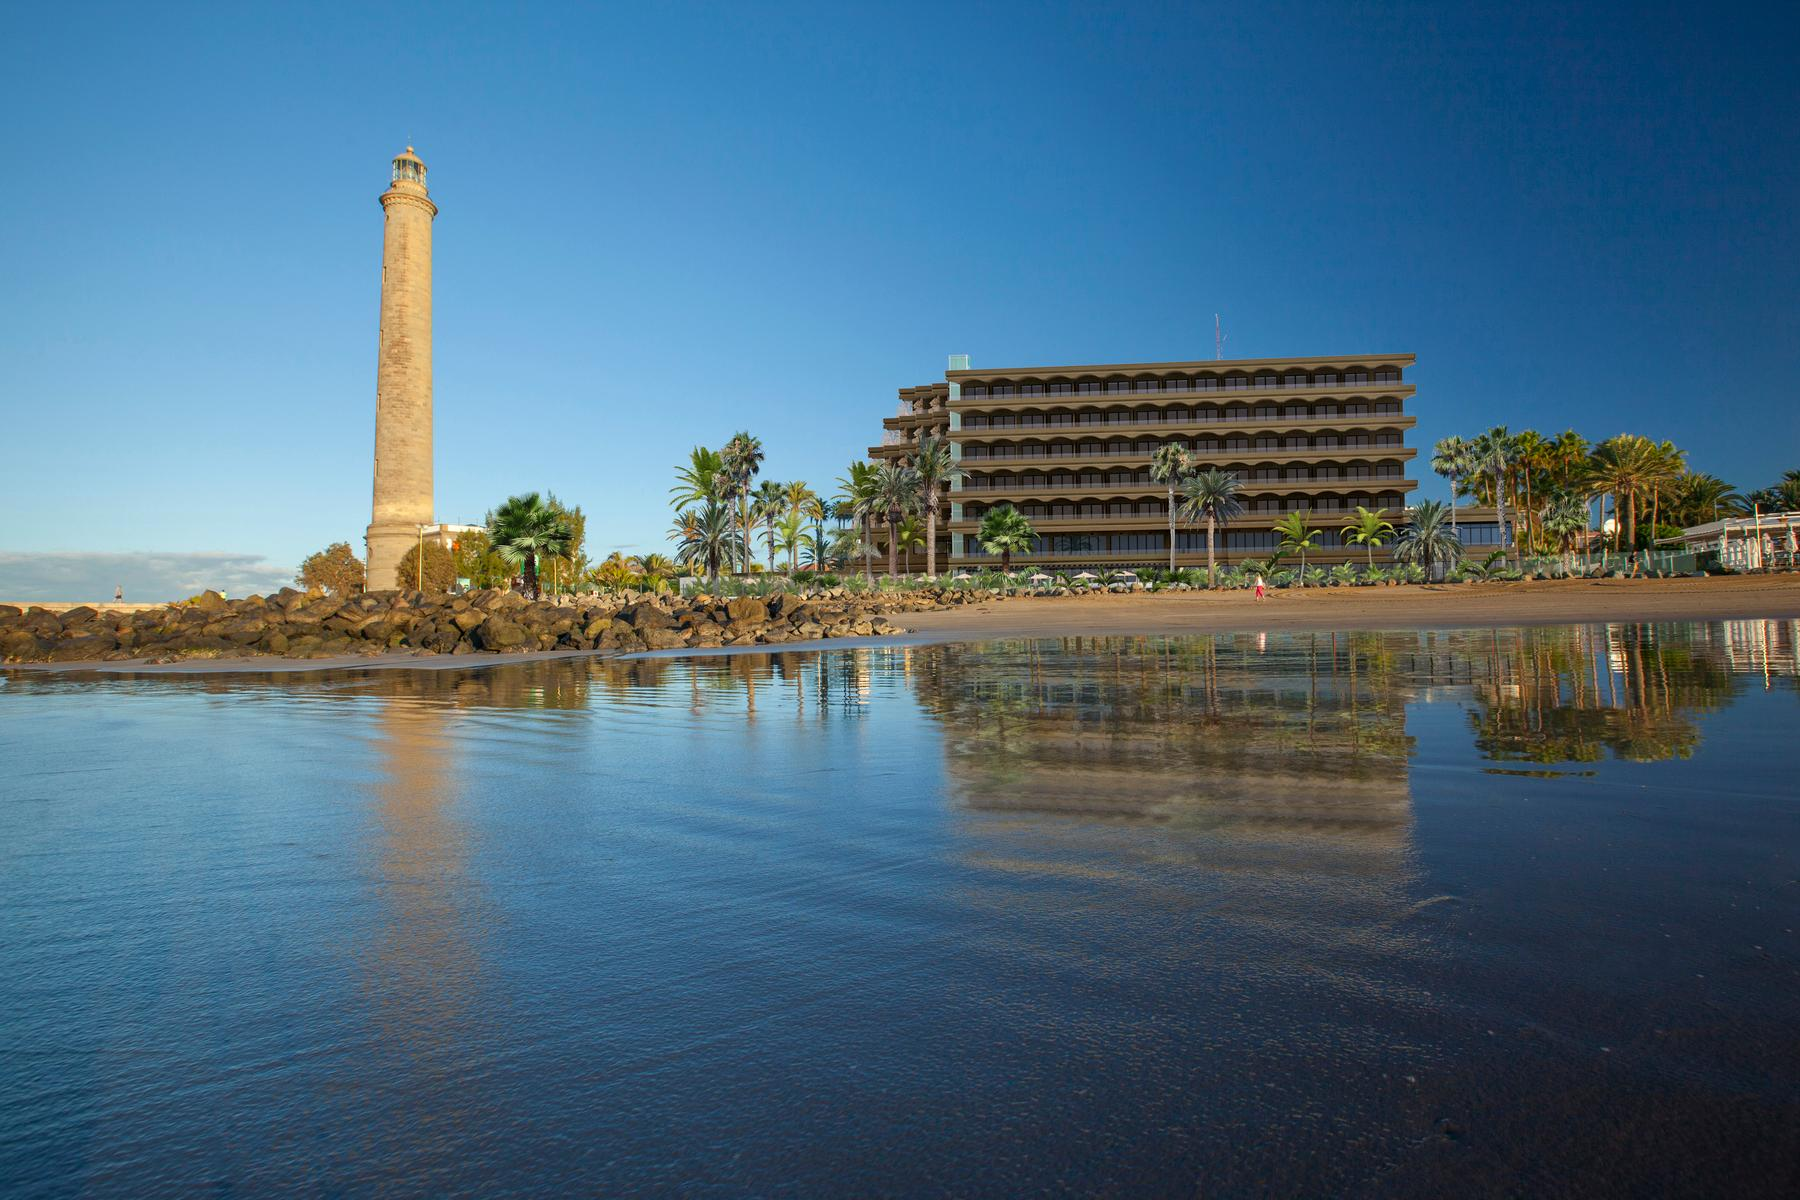 IFA Hotel Faro in Maspalomas, Gran Canaria, Canary Islands